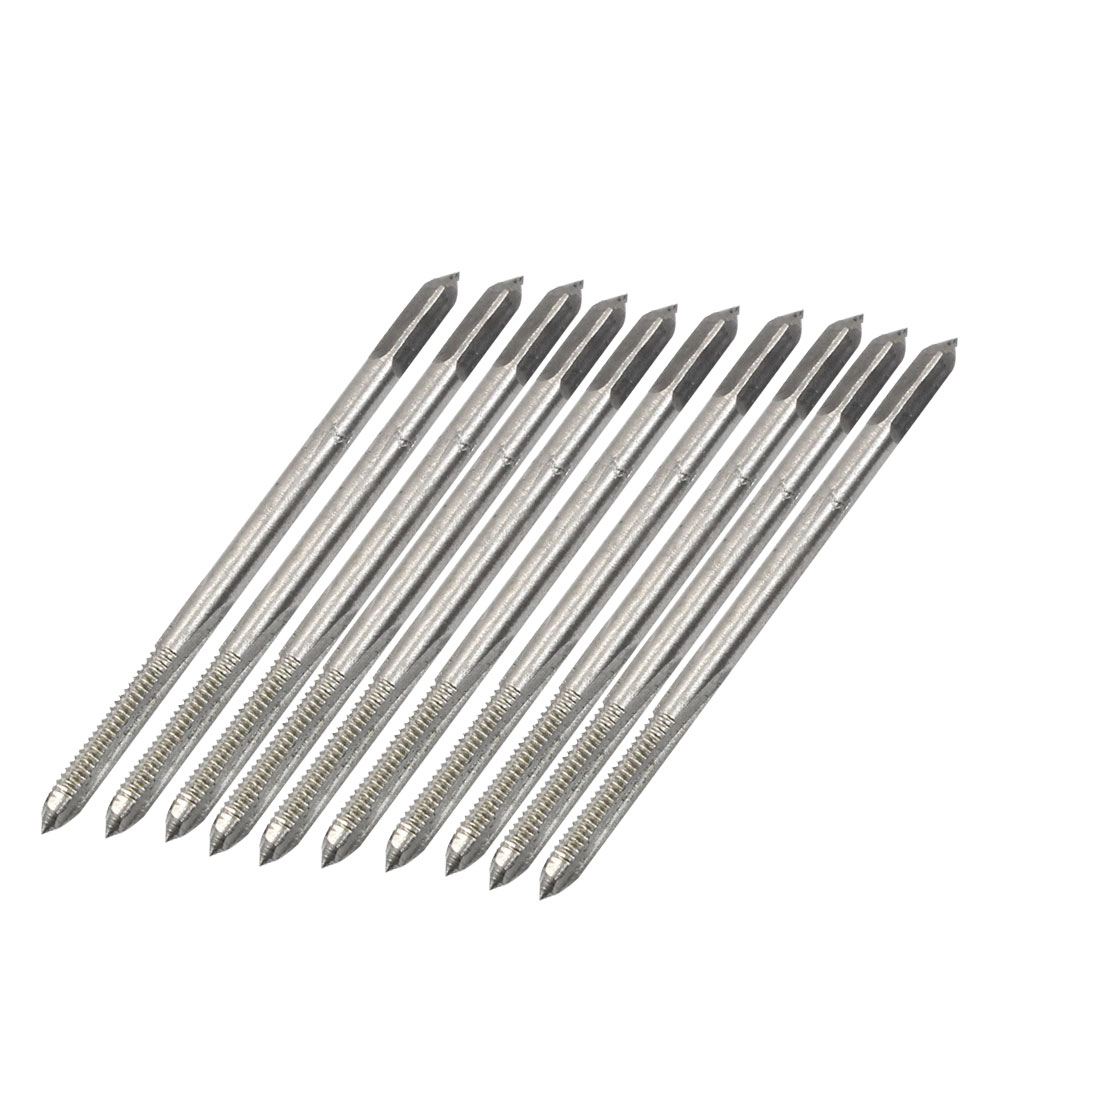 10pcs Round Shank HSS M2.5 2.5mm Threaded Straight Flutes Machine Plug Taps